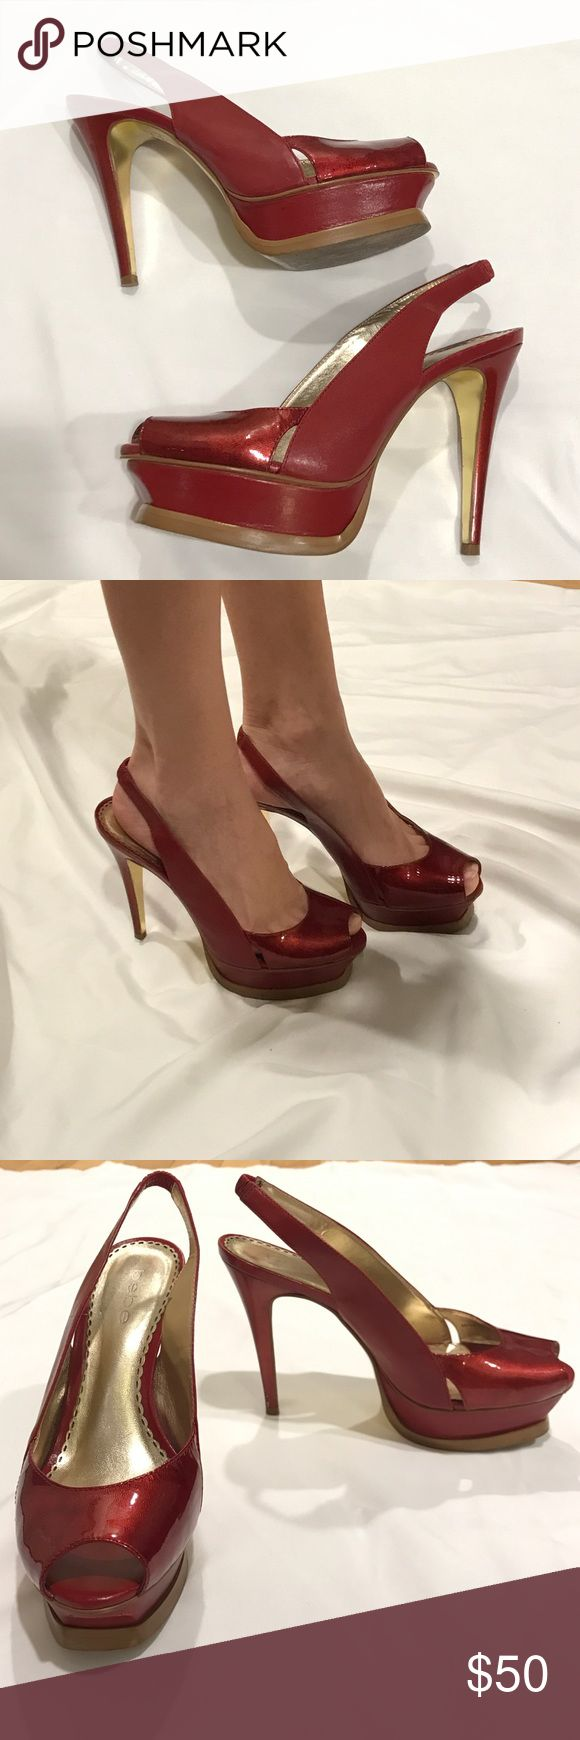 Bebe Zahara red platform sling back heels size 6 Bebe classic Zahara heels . The sling has an elastic to and easy to slip on. Very comfortable . Patent peep toe and leather all around. Size 6. bebe Shoes Heels